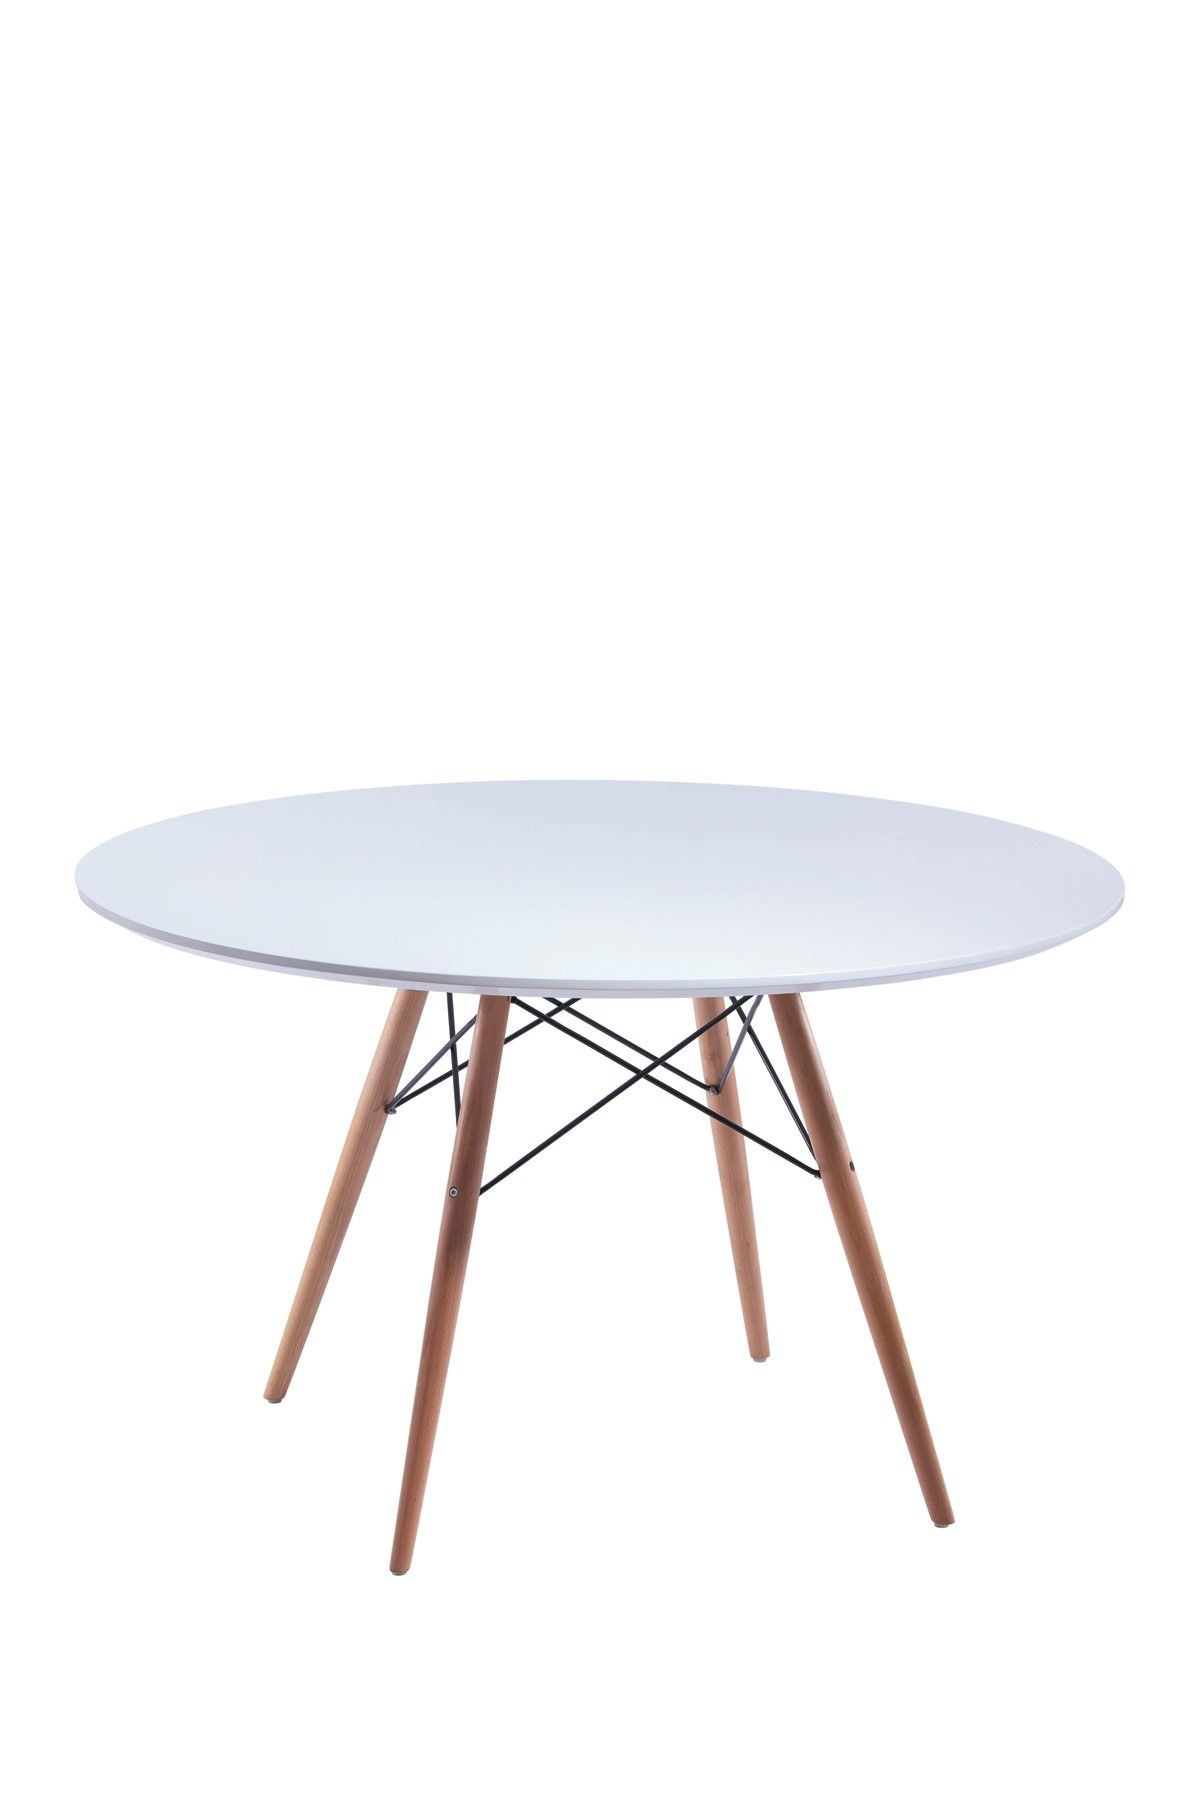 Mesa Tower Wood Table Eames Dining White Round Dining Table